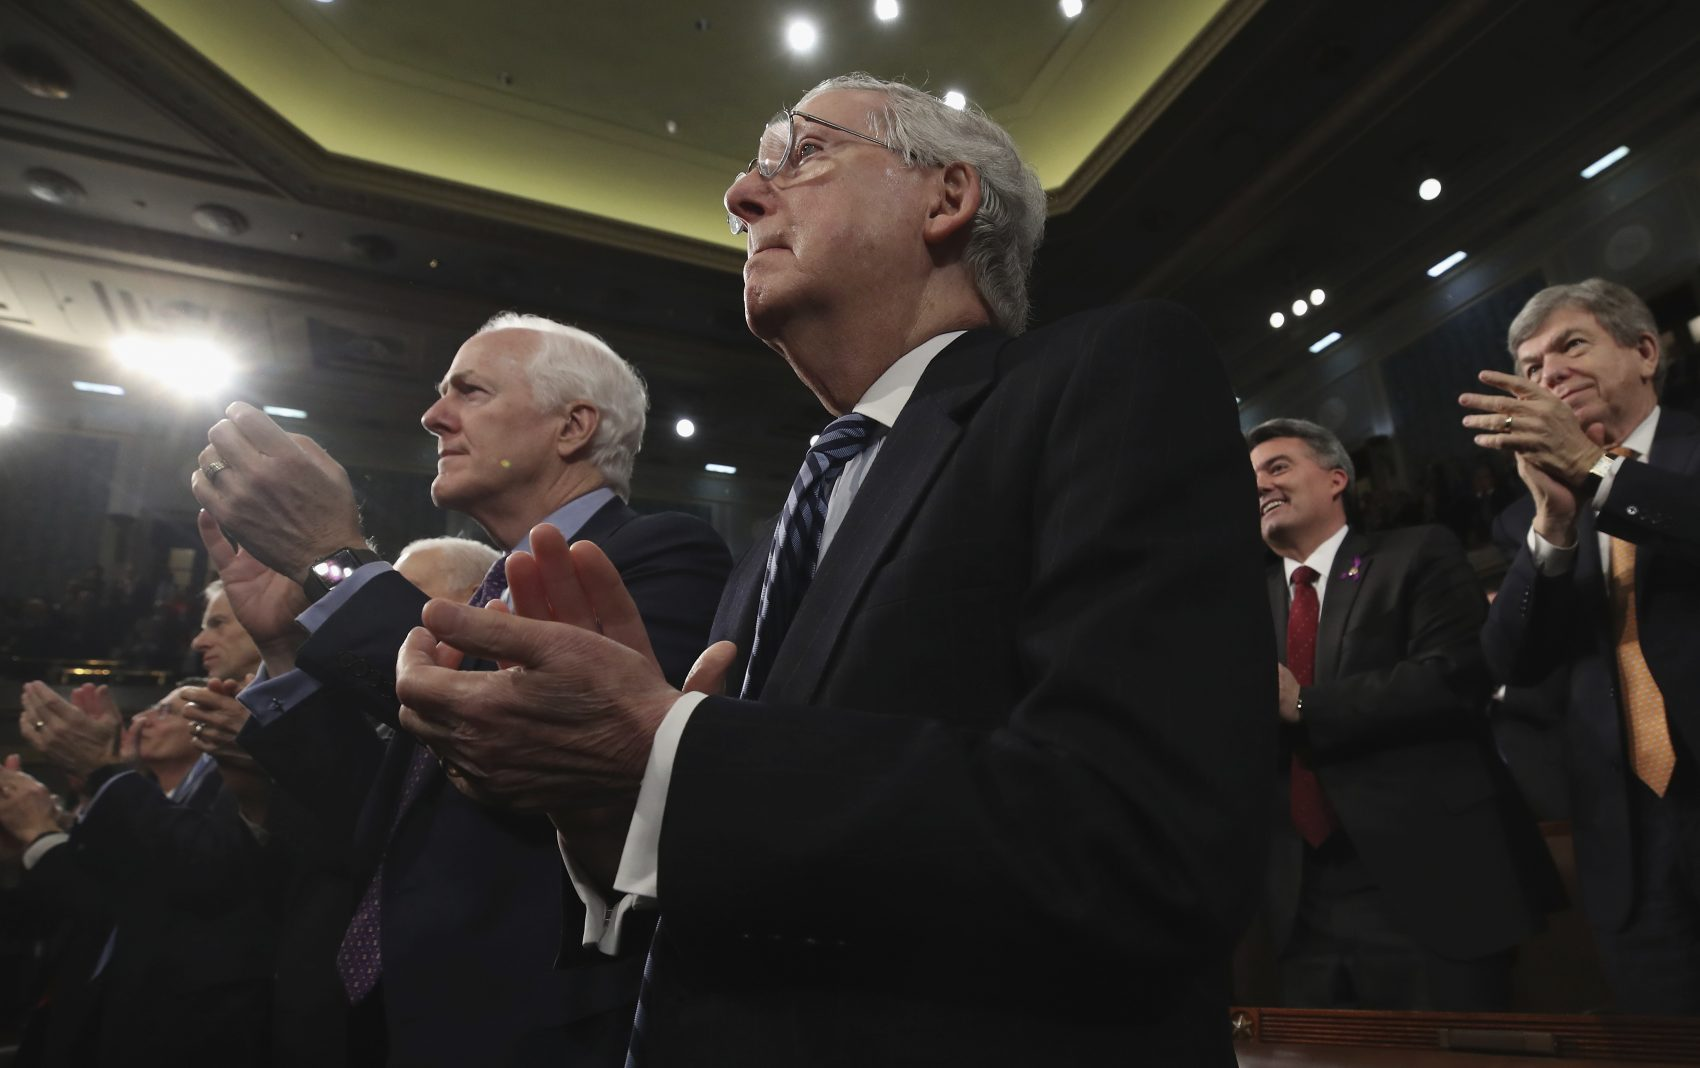 Senate Majority Leader Sen. Mitch McConnell of Ky., watches during the State of the Union address in the chamber of the U.S. House of Representatives Tuesday, Jan. 30, 2018, in Washington. (Win McNamee/AP)